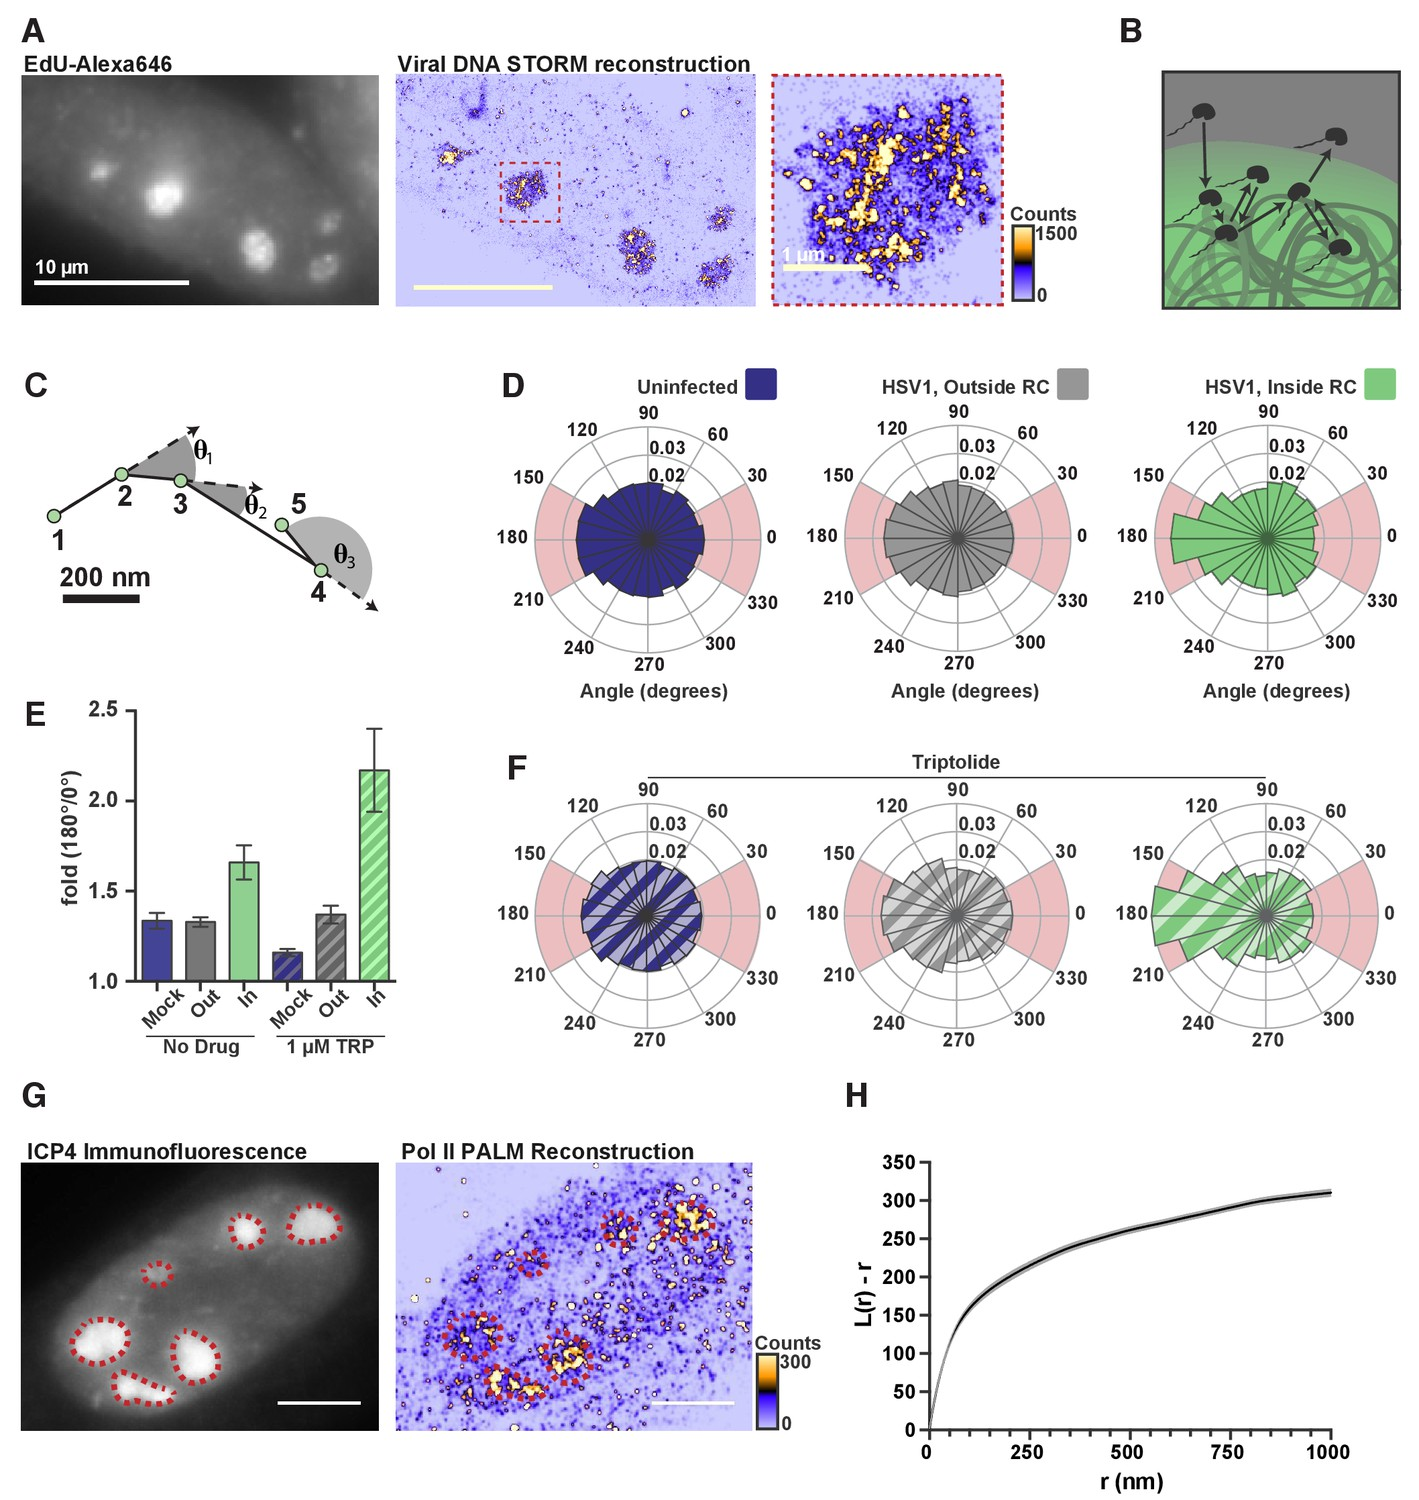 Evidence for DNA-mediated nuclear compartmentalization